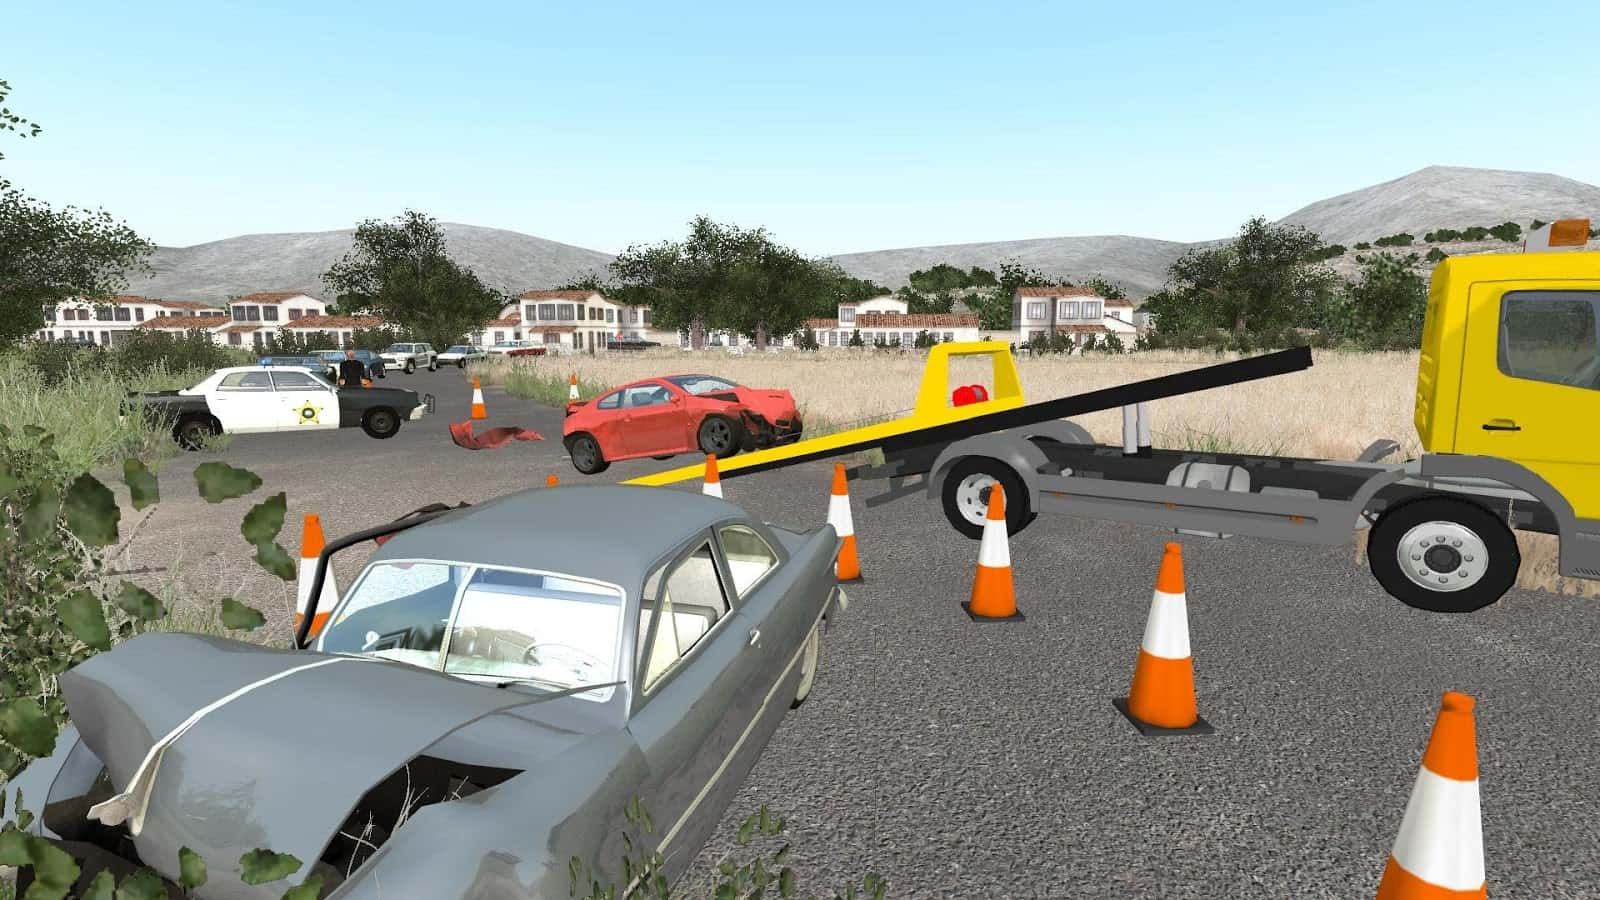 Rigs of Rods truck physics simulation game - FOSS Games and FOS Software Sources